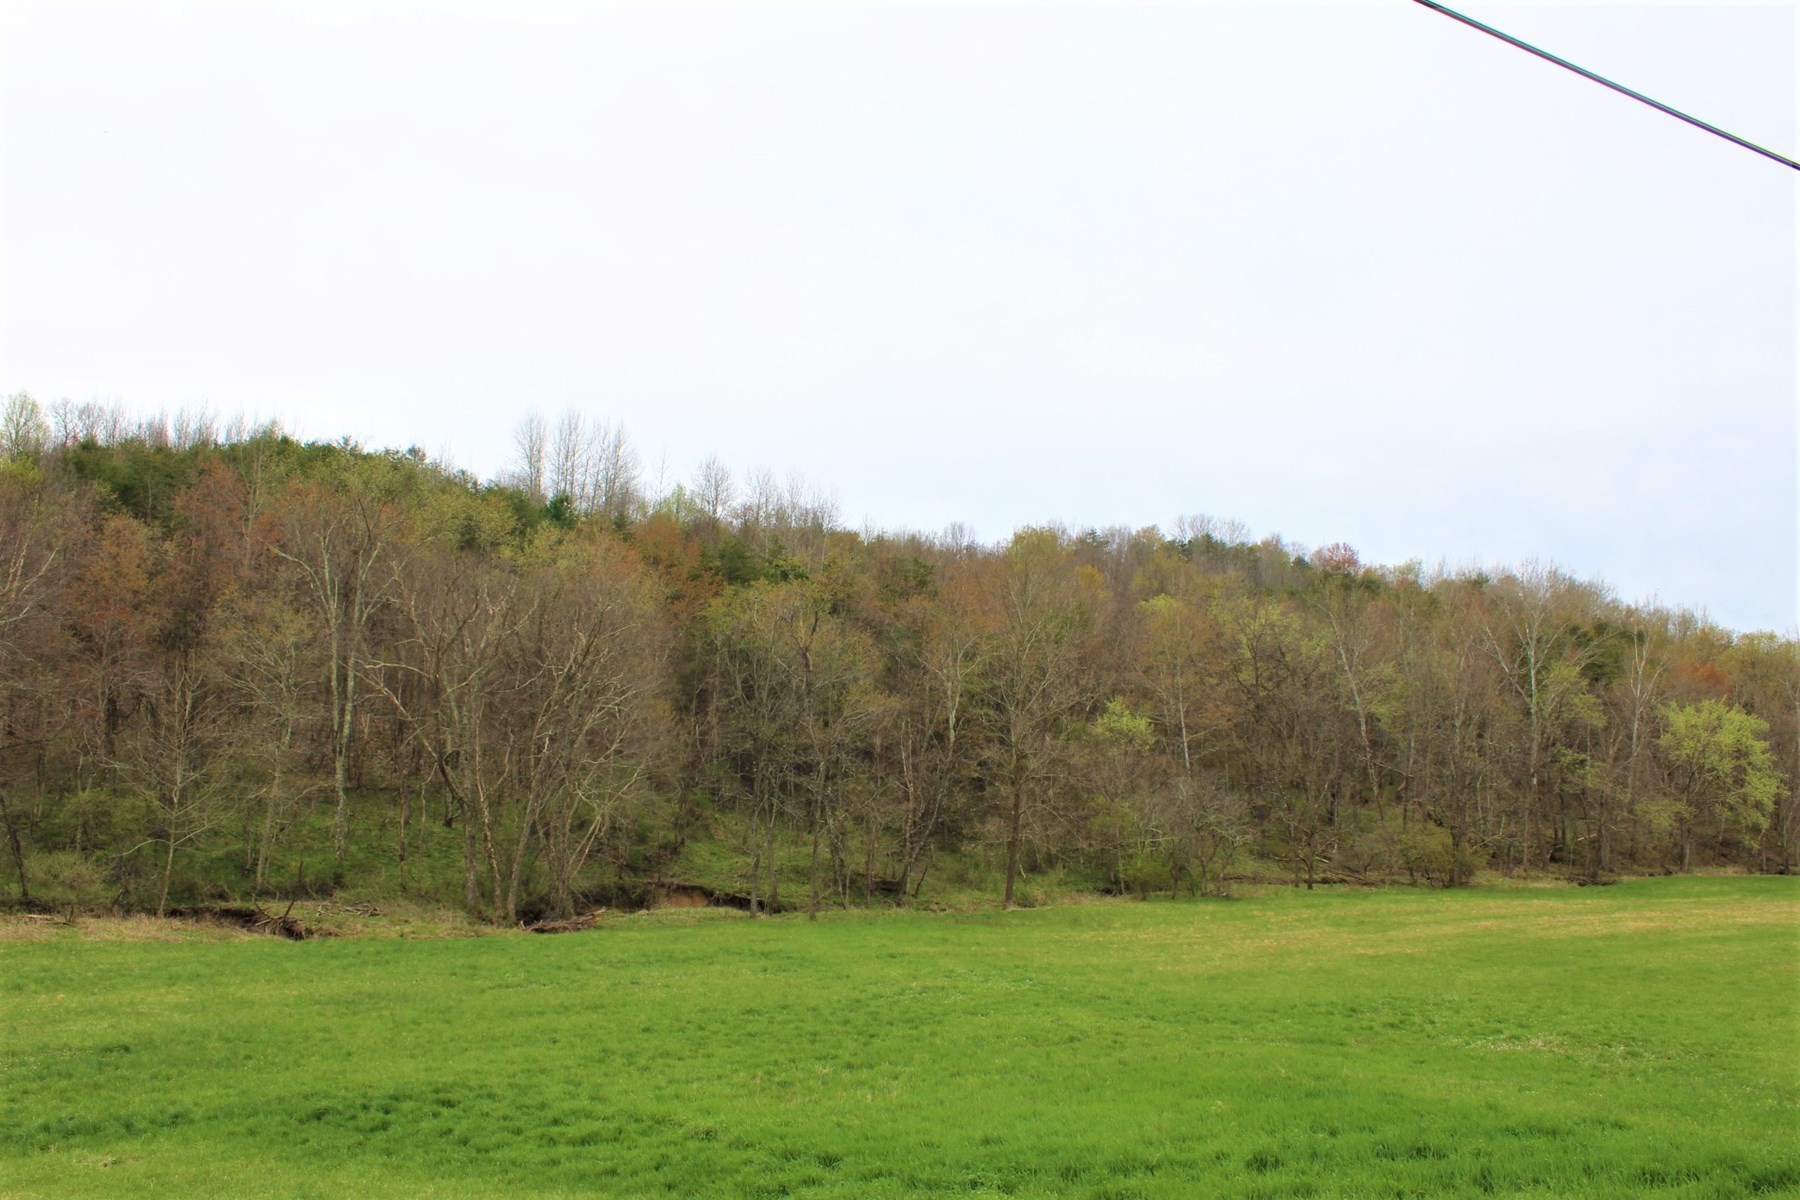 12.6 Acres of Ohio land for sale in the Hocking Hills.